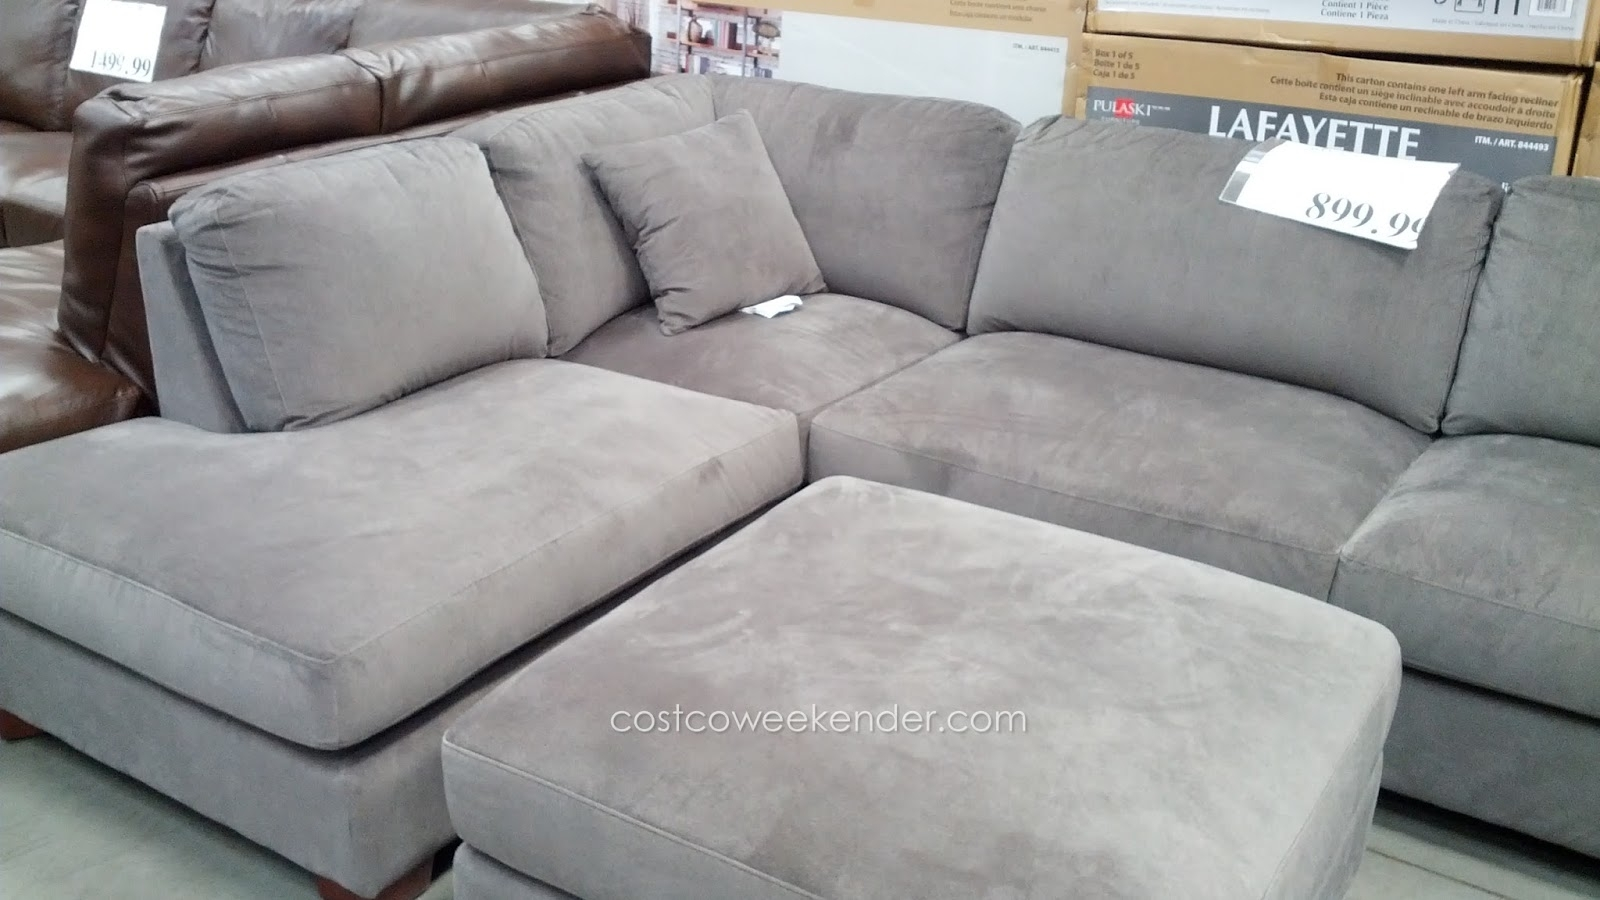 Sectional Sofa Design: Lovely Sectional Sofas Costco Leather Sofas Throughout Home Furniture Sectional Sofas (Image 7 of 10)